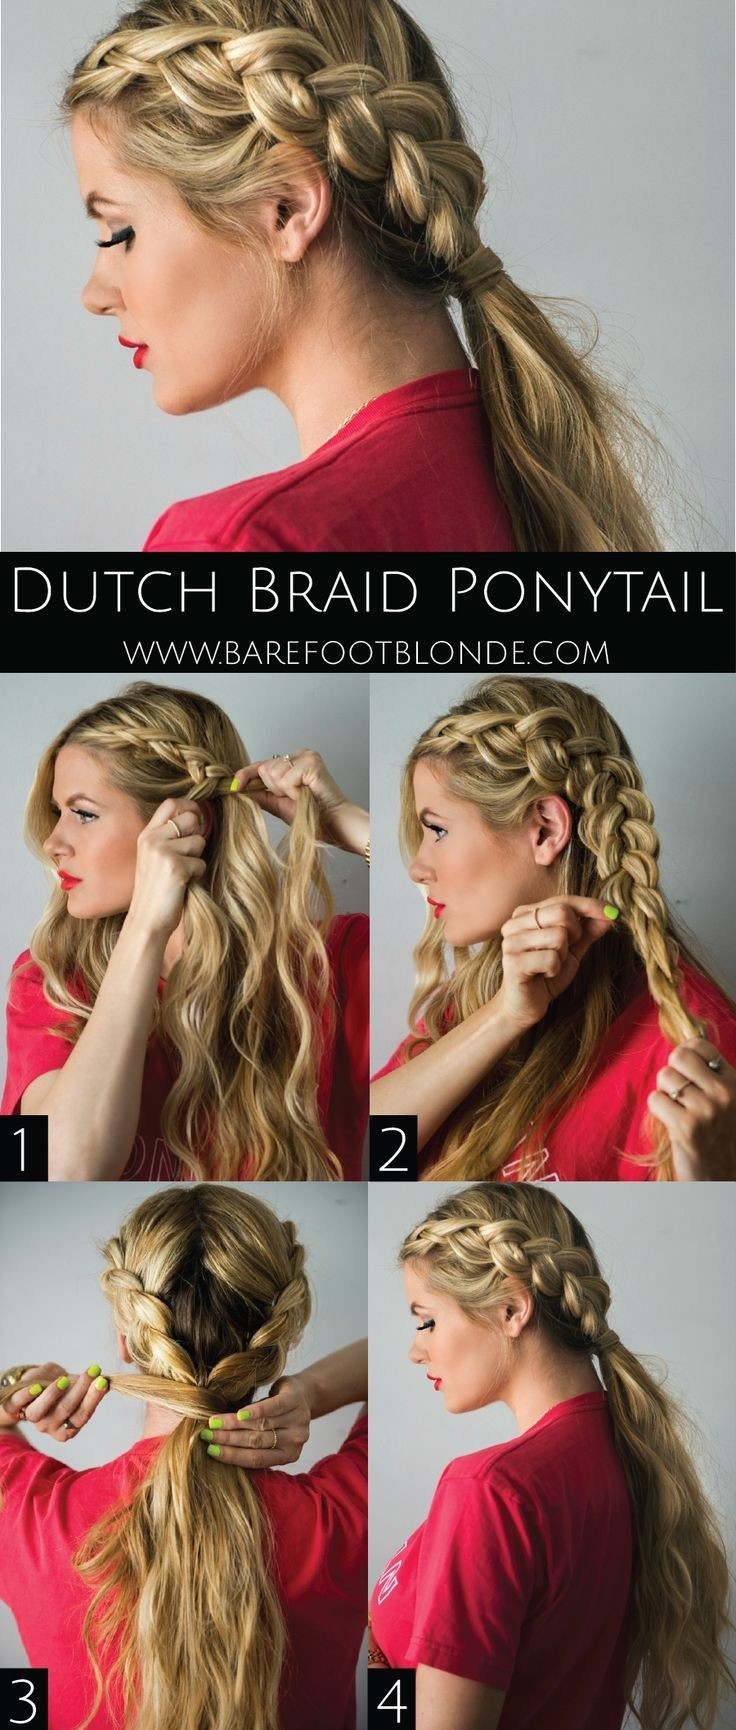 Dutch Braid Ponytail: Tutorial für lose geflochtene Frisuren für langes Haar